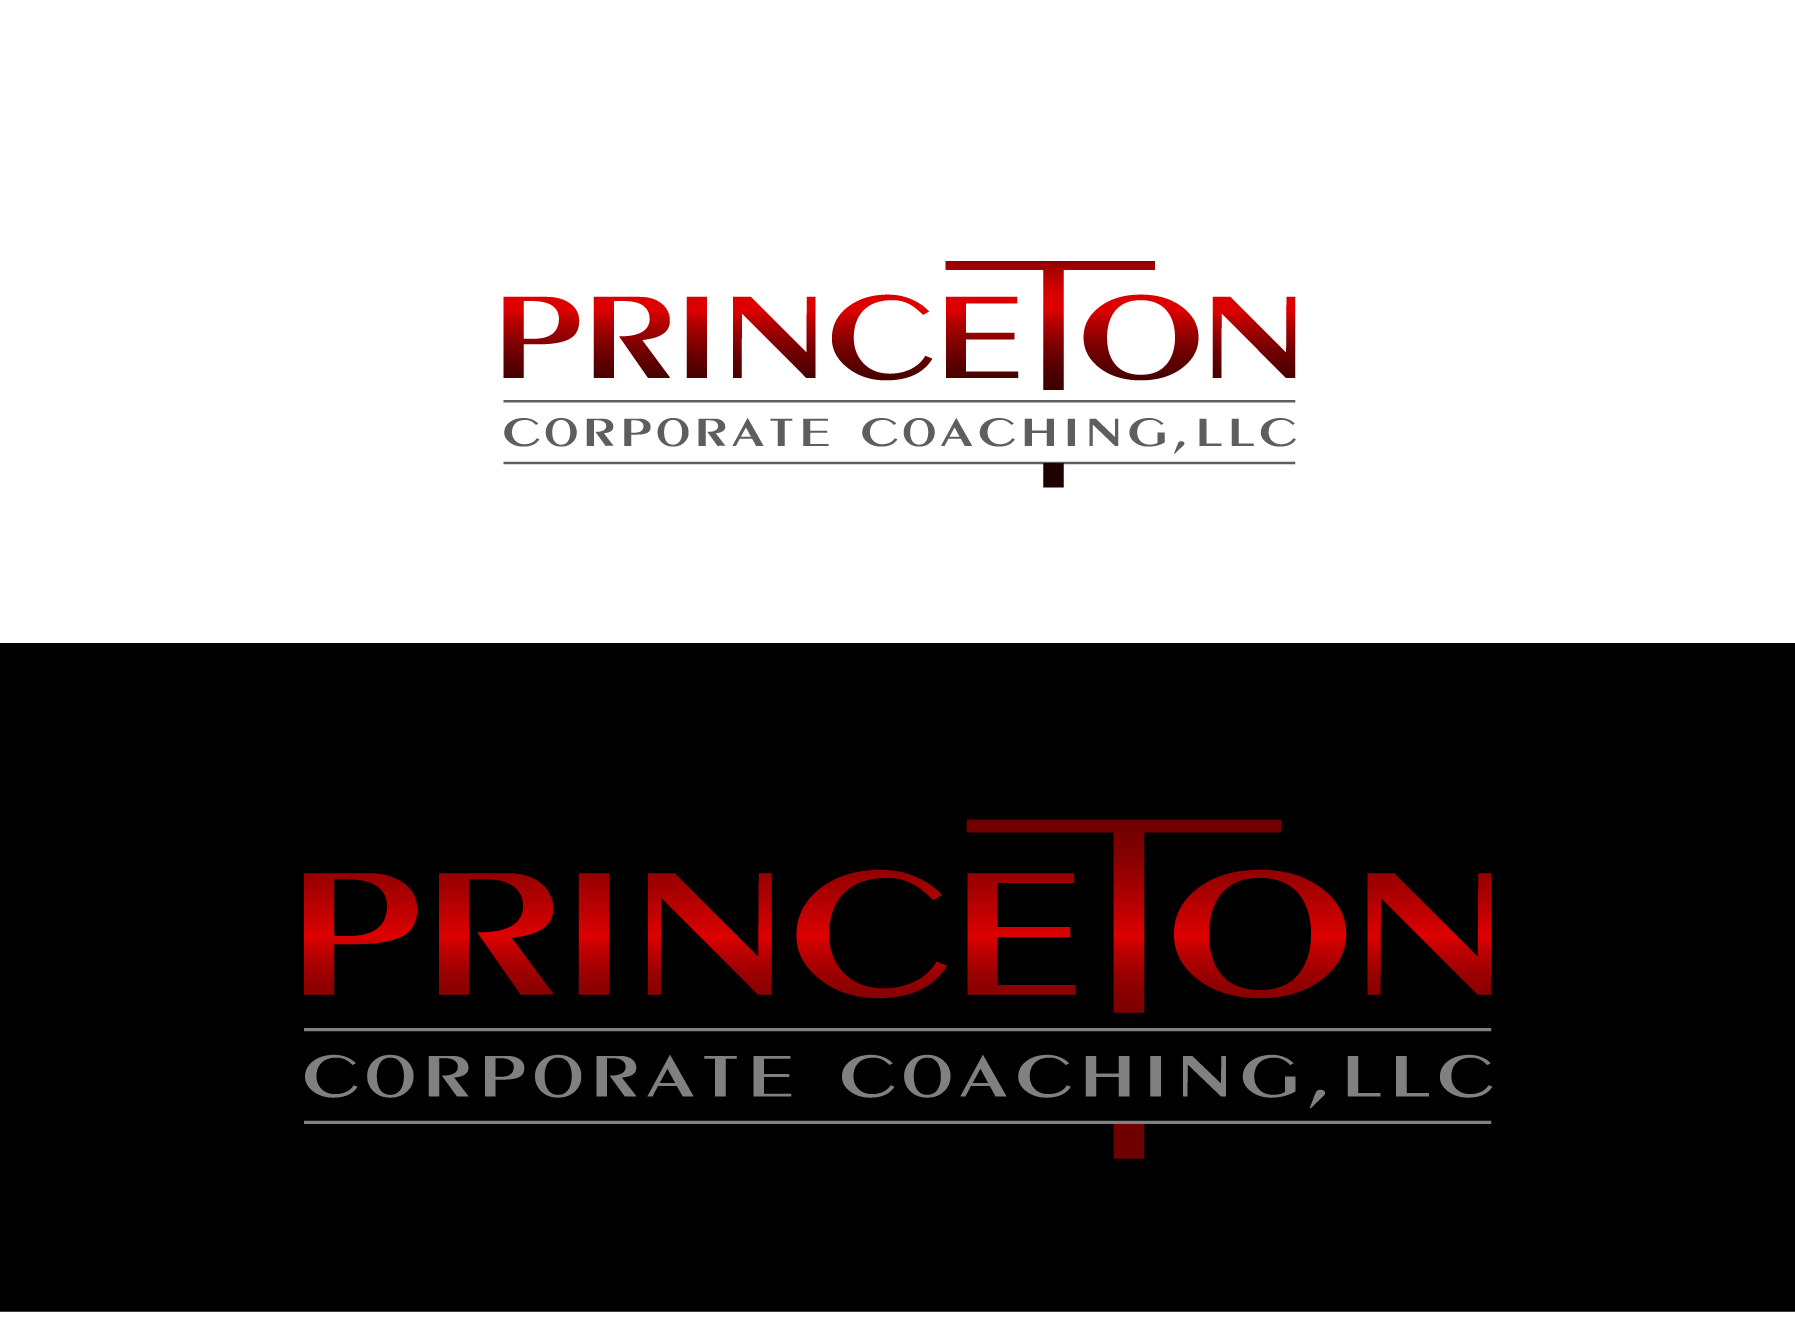 Logo Design by Wilfredo Mendoza - Entry No. 198 in the Logo Design Contest Unique Logo Design Wanted for Princeton Corporate Coaching, LLC.